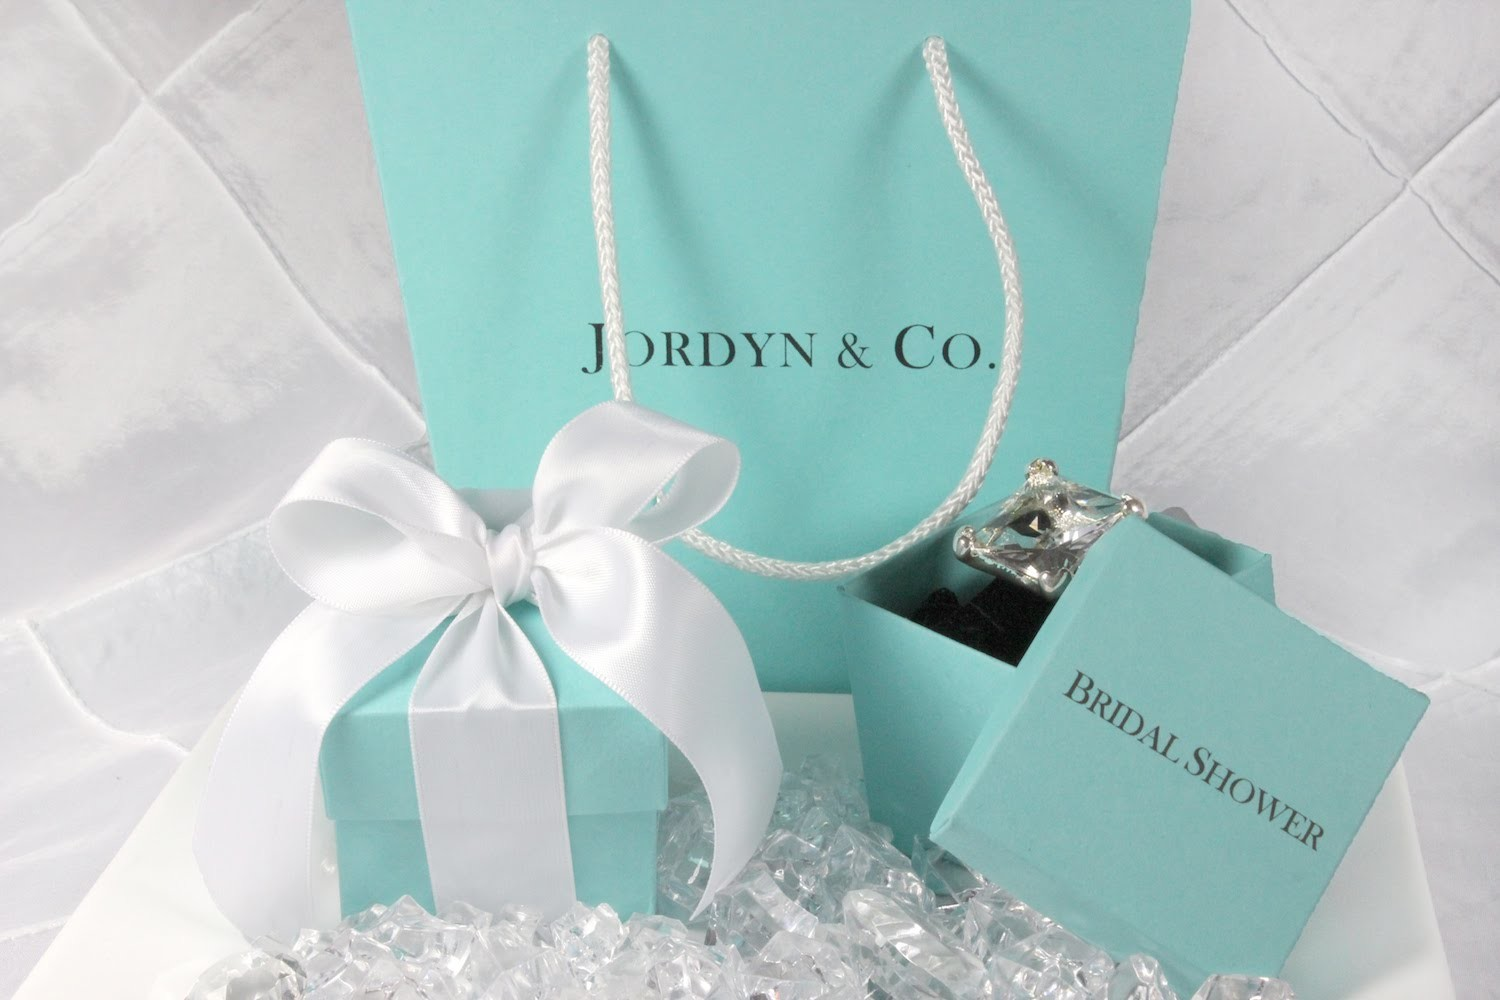 Customized Favor Gift Bag - DIY Tutorial on How to Assemble Personalized Gift Bags